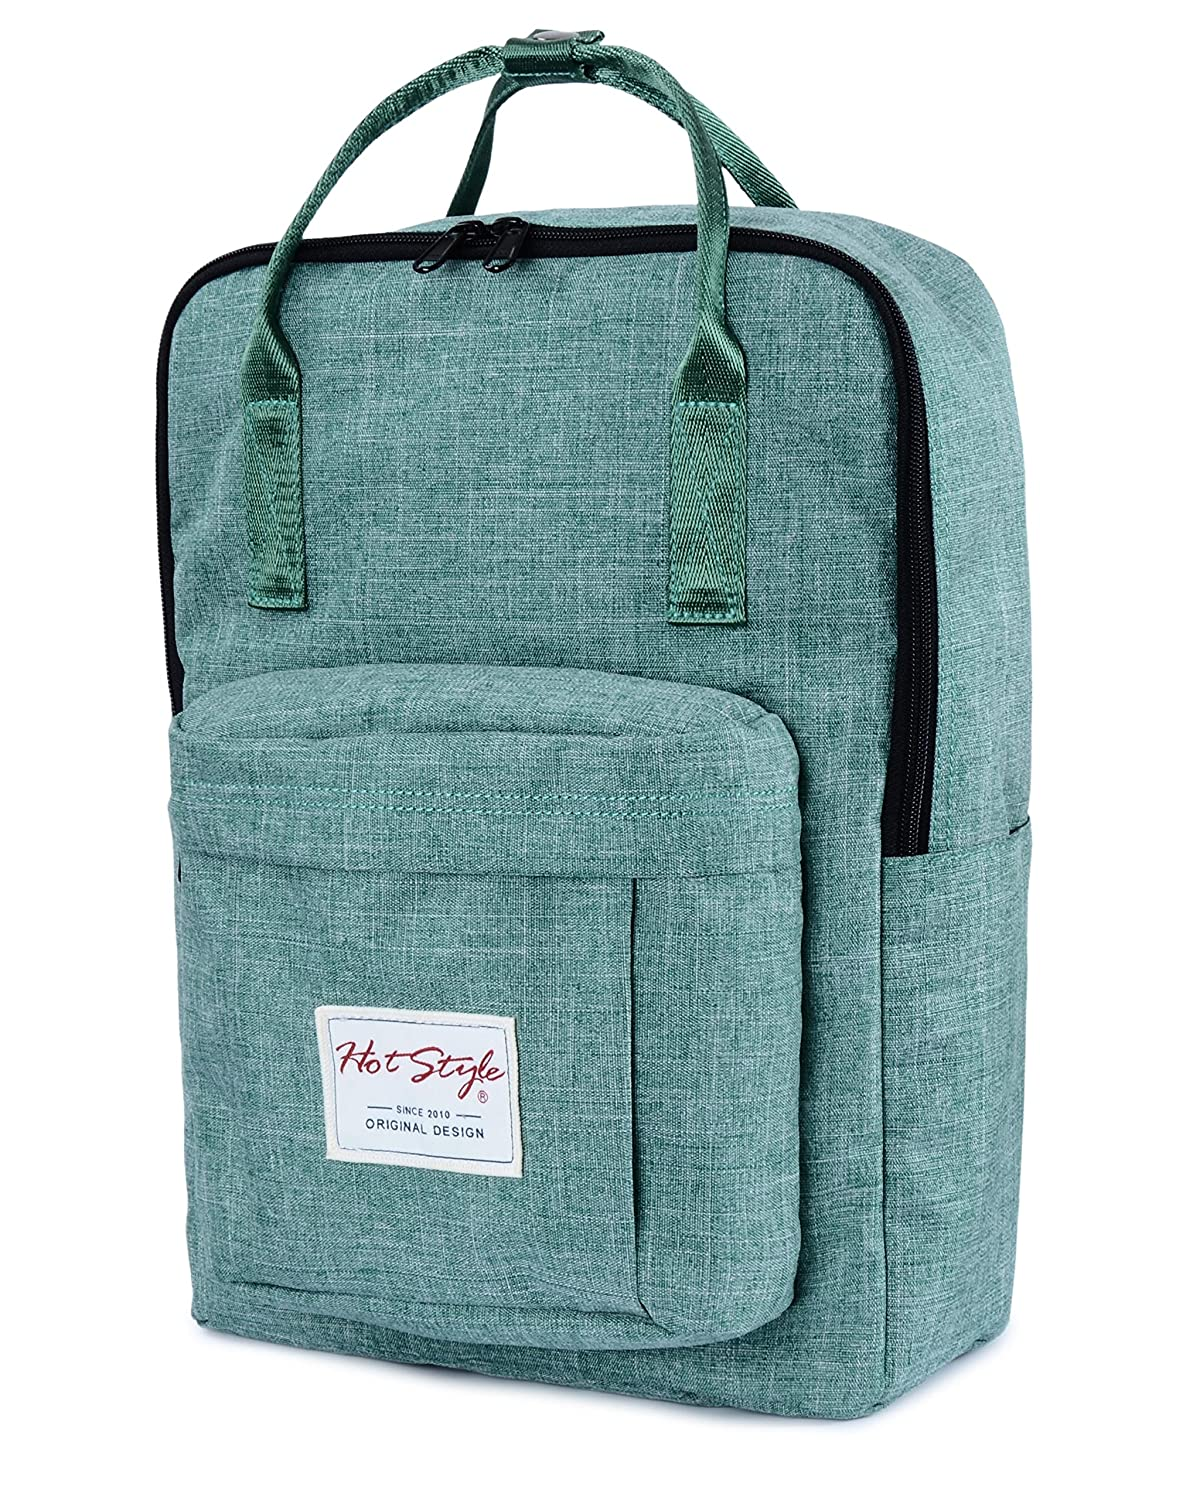 HotStyle Basic Classic  Bestie Cute Diaper Bag Backpack for Mom (18  Liters), Green  Amazon.ca  Luggage   Bags d052534bb3